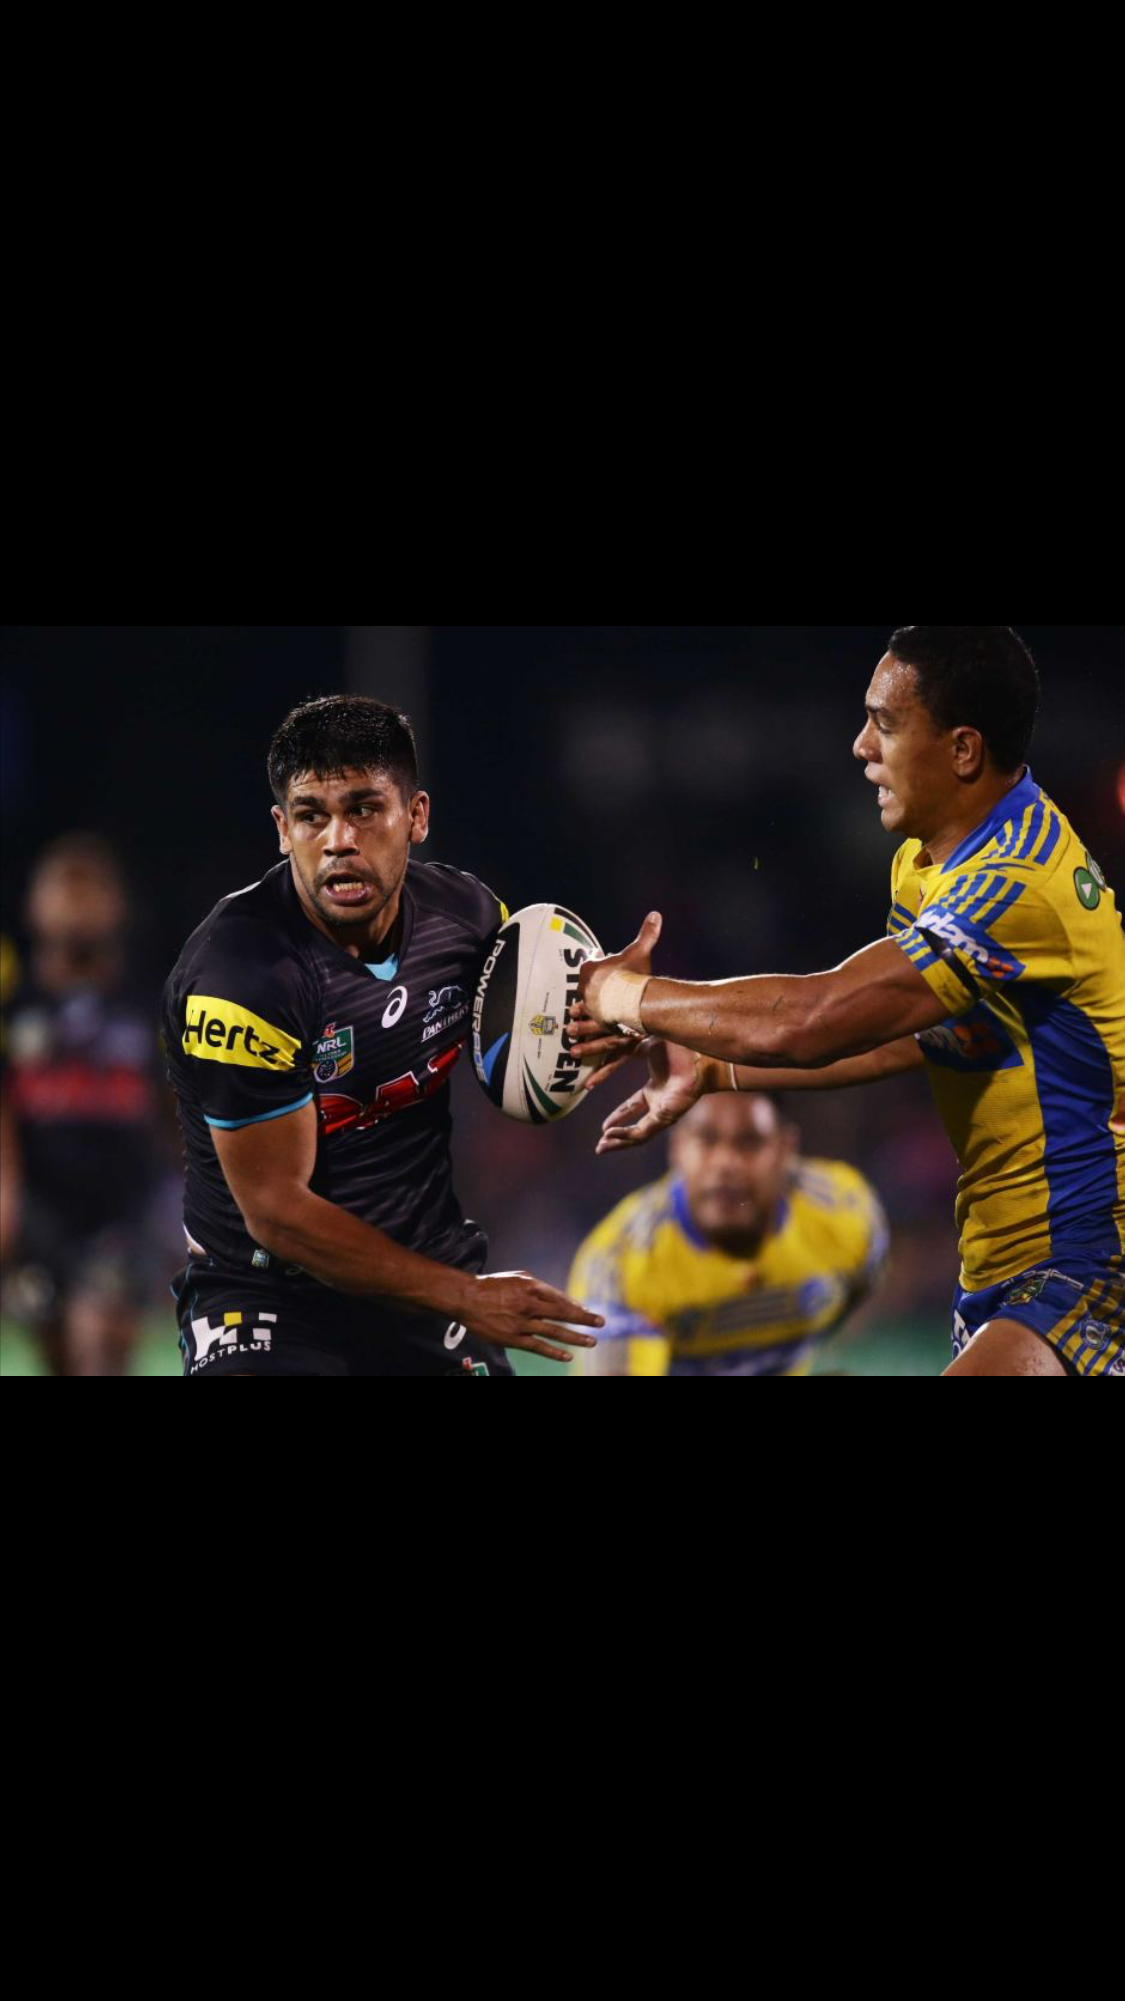 Pin by Mike Bridger on Penrith Panthers 2017 first team